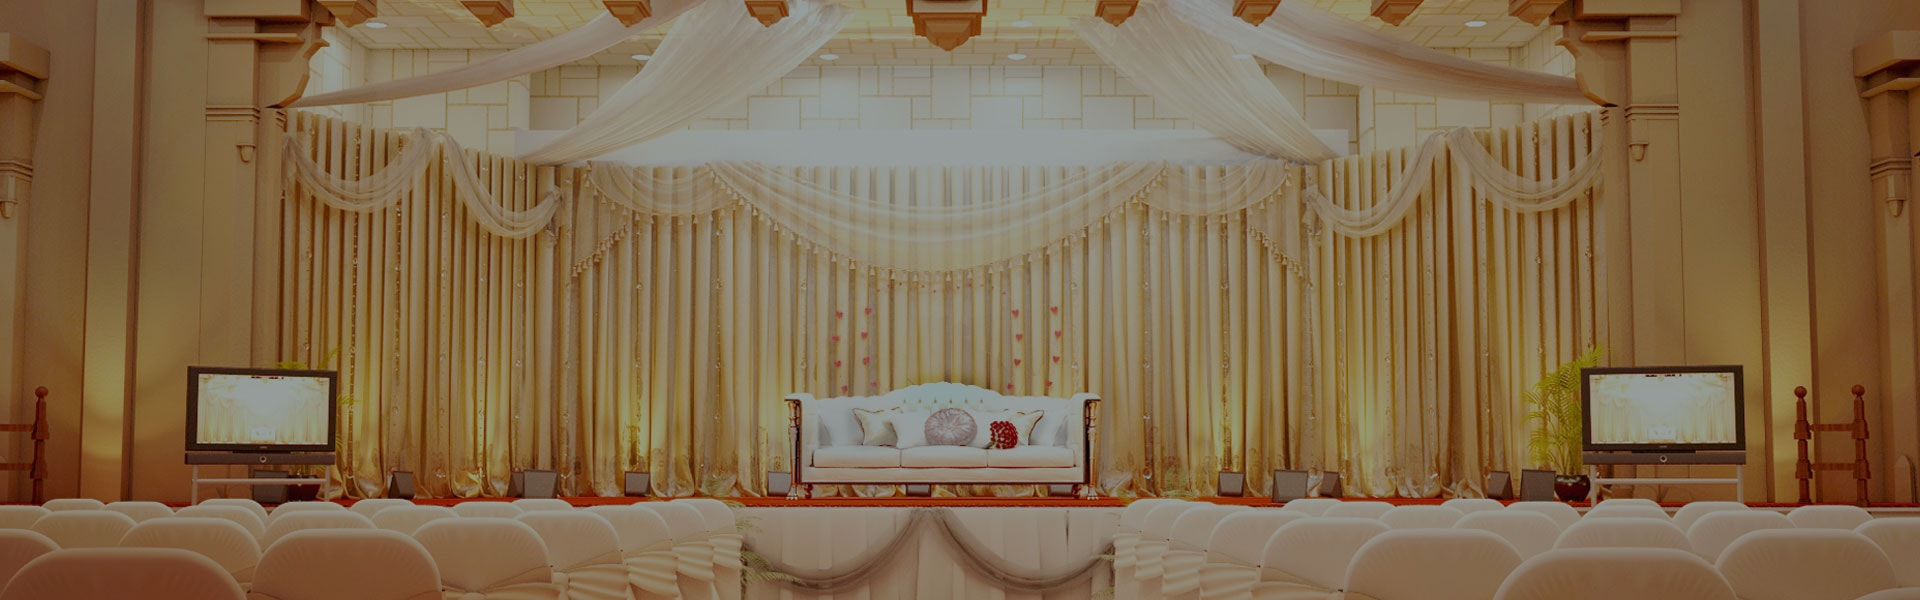 wedding-hall-in-london